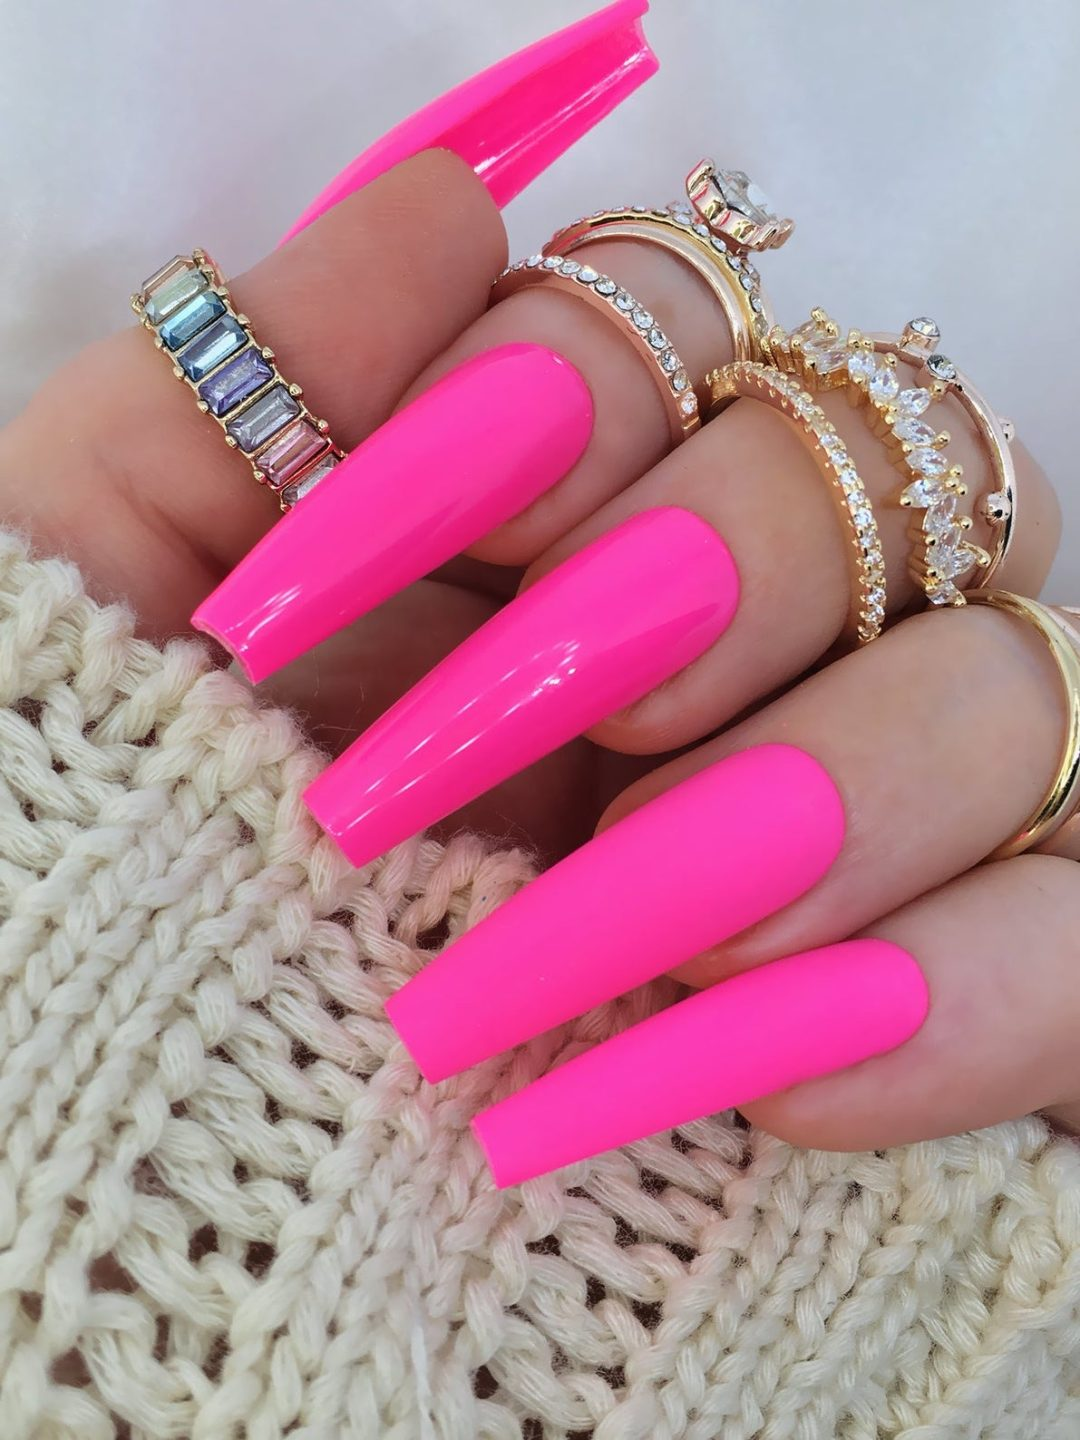 Hot fuchsia pink nails in acrylic coffin shape